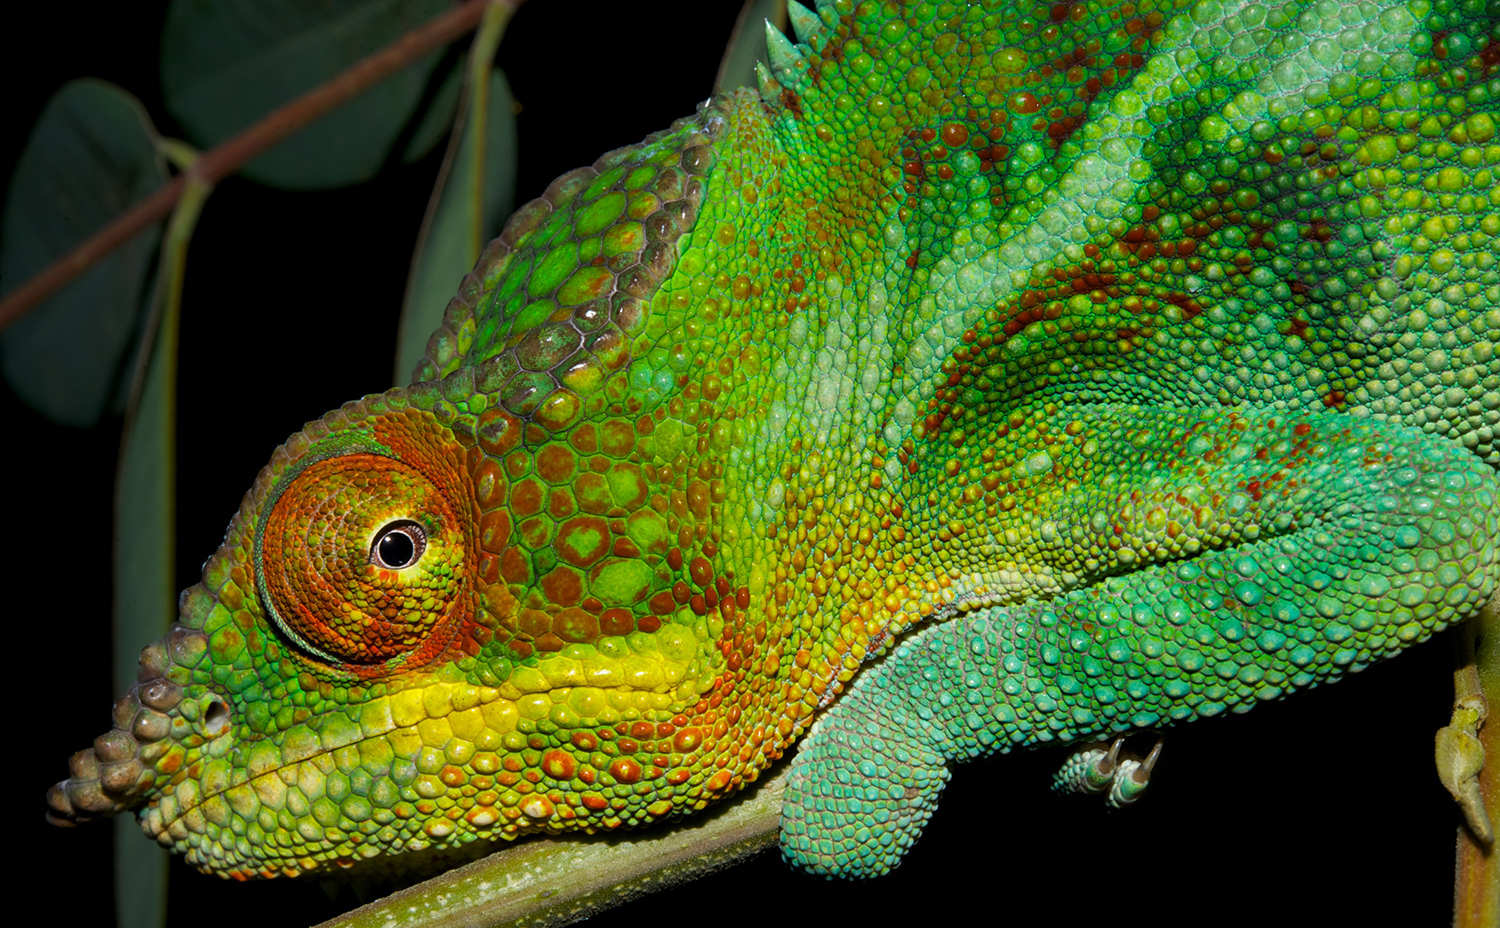 Headshot of the panther chameleon clutching a branch, peering into the camera with its protruding eye.